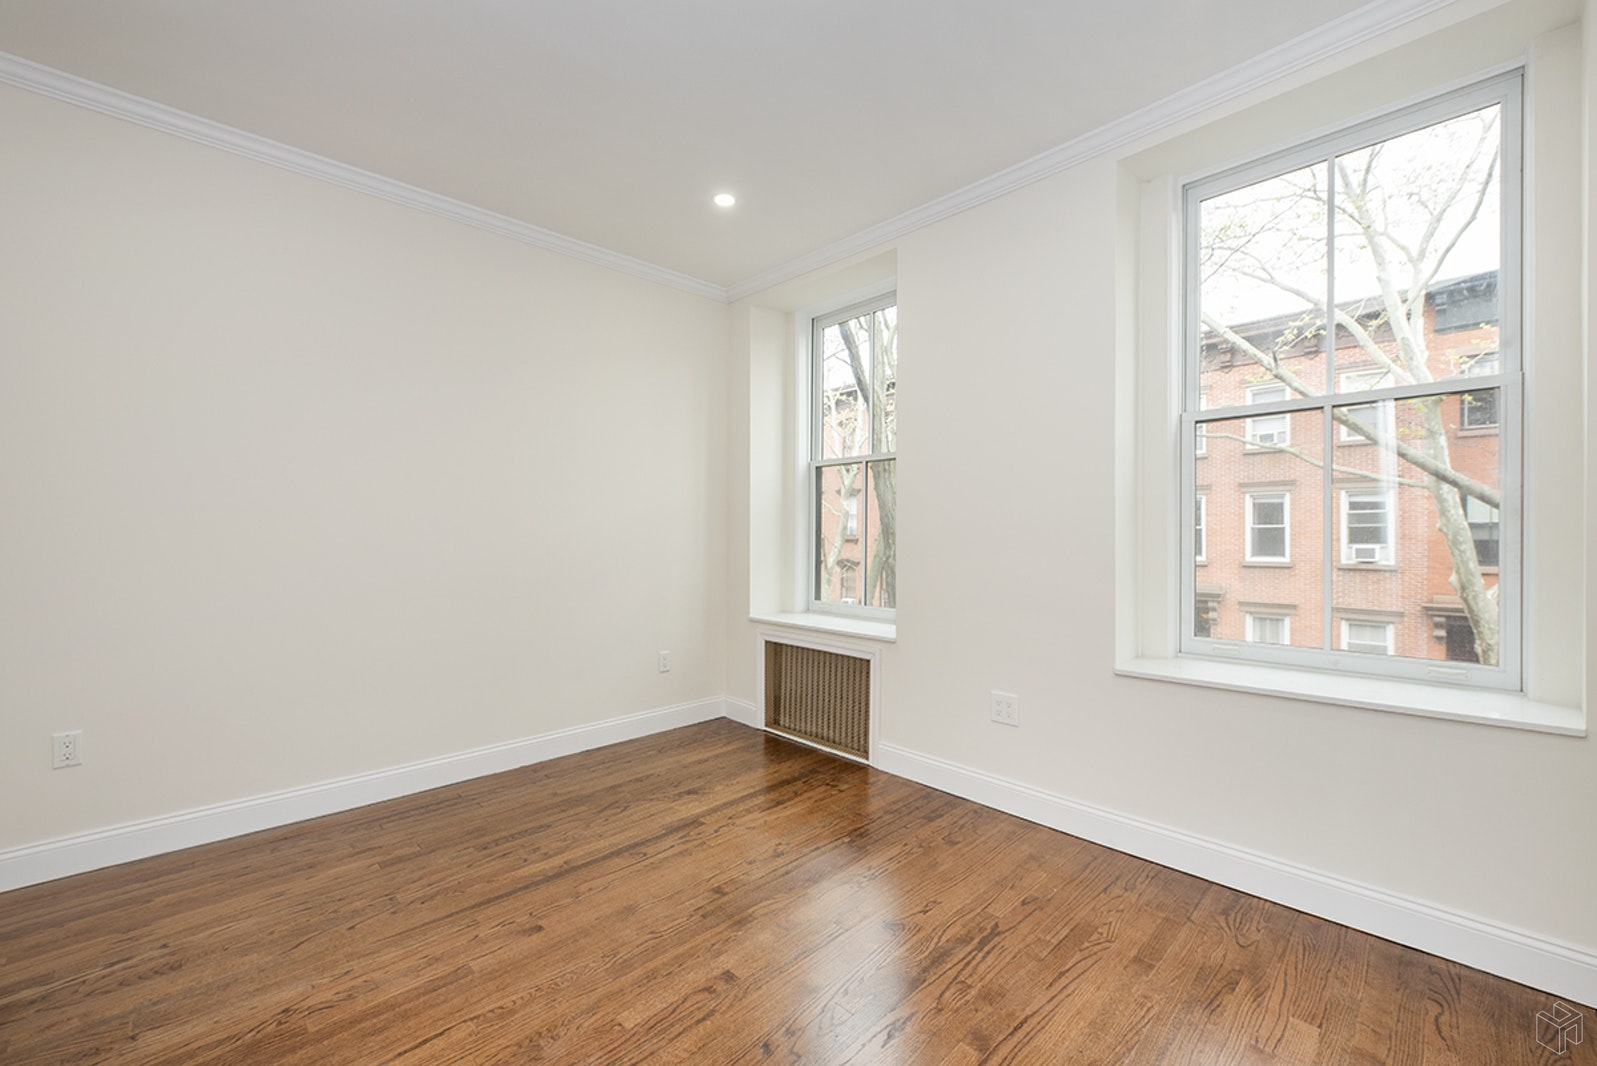 52 Cheever Place, Apt 2, Brooklyn, New York 11231